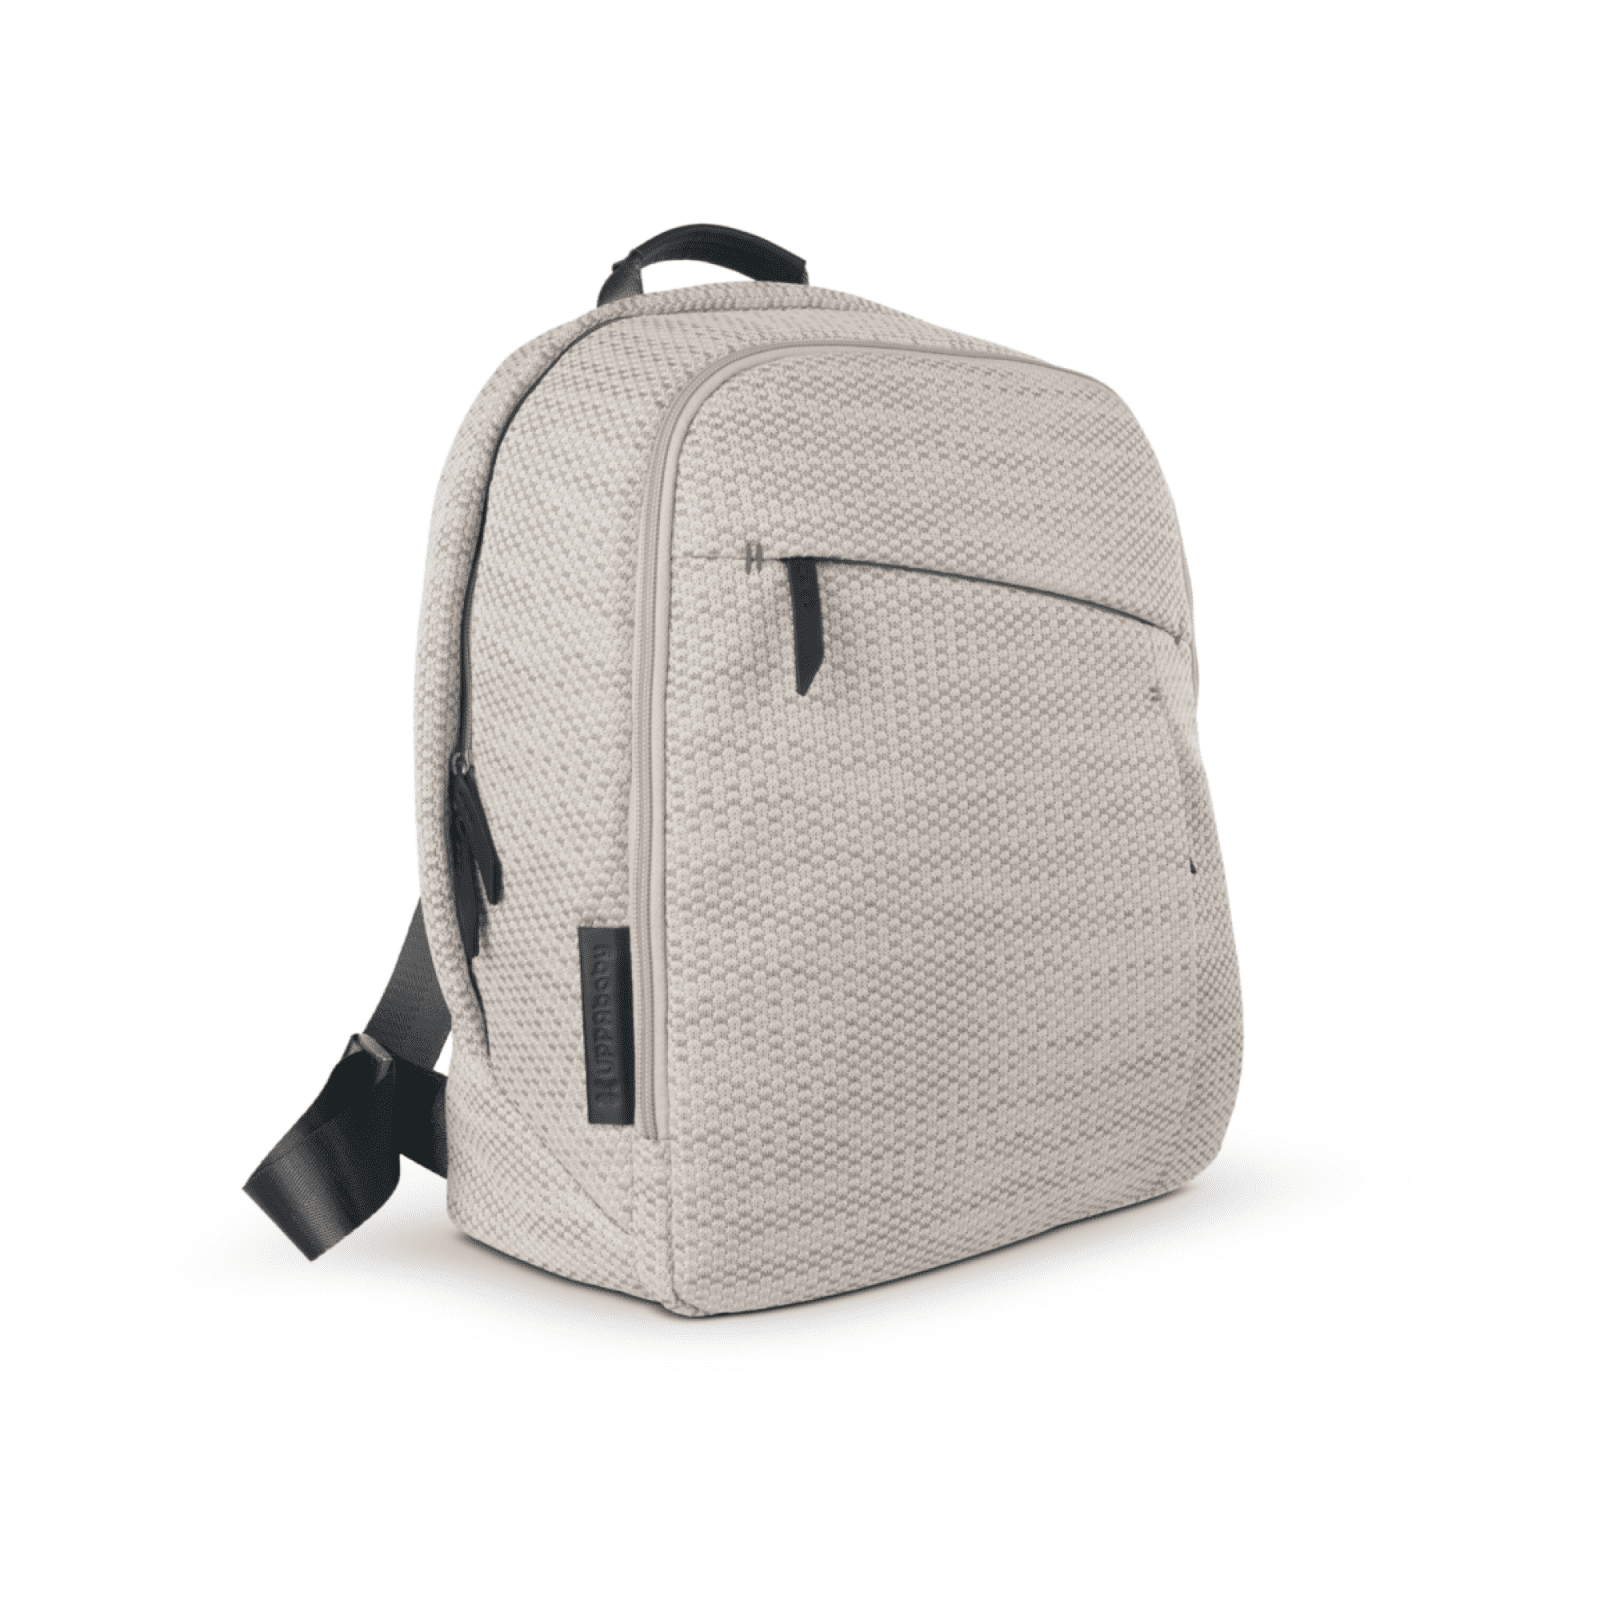 Changing Backpack: SIERRA product image